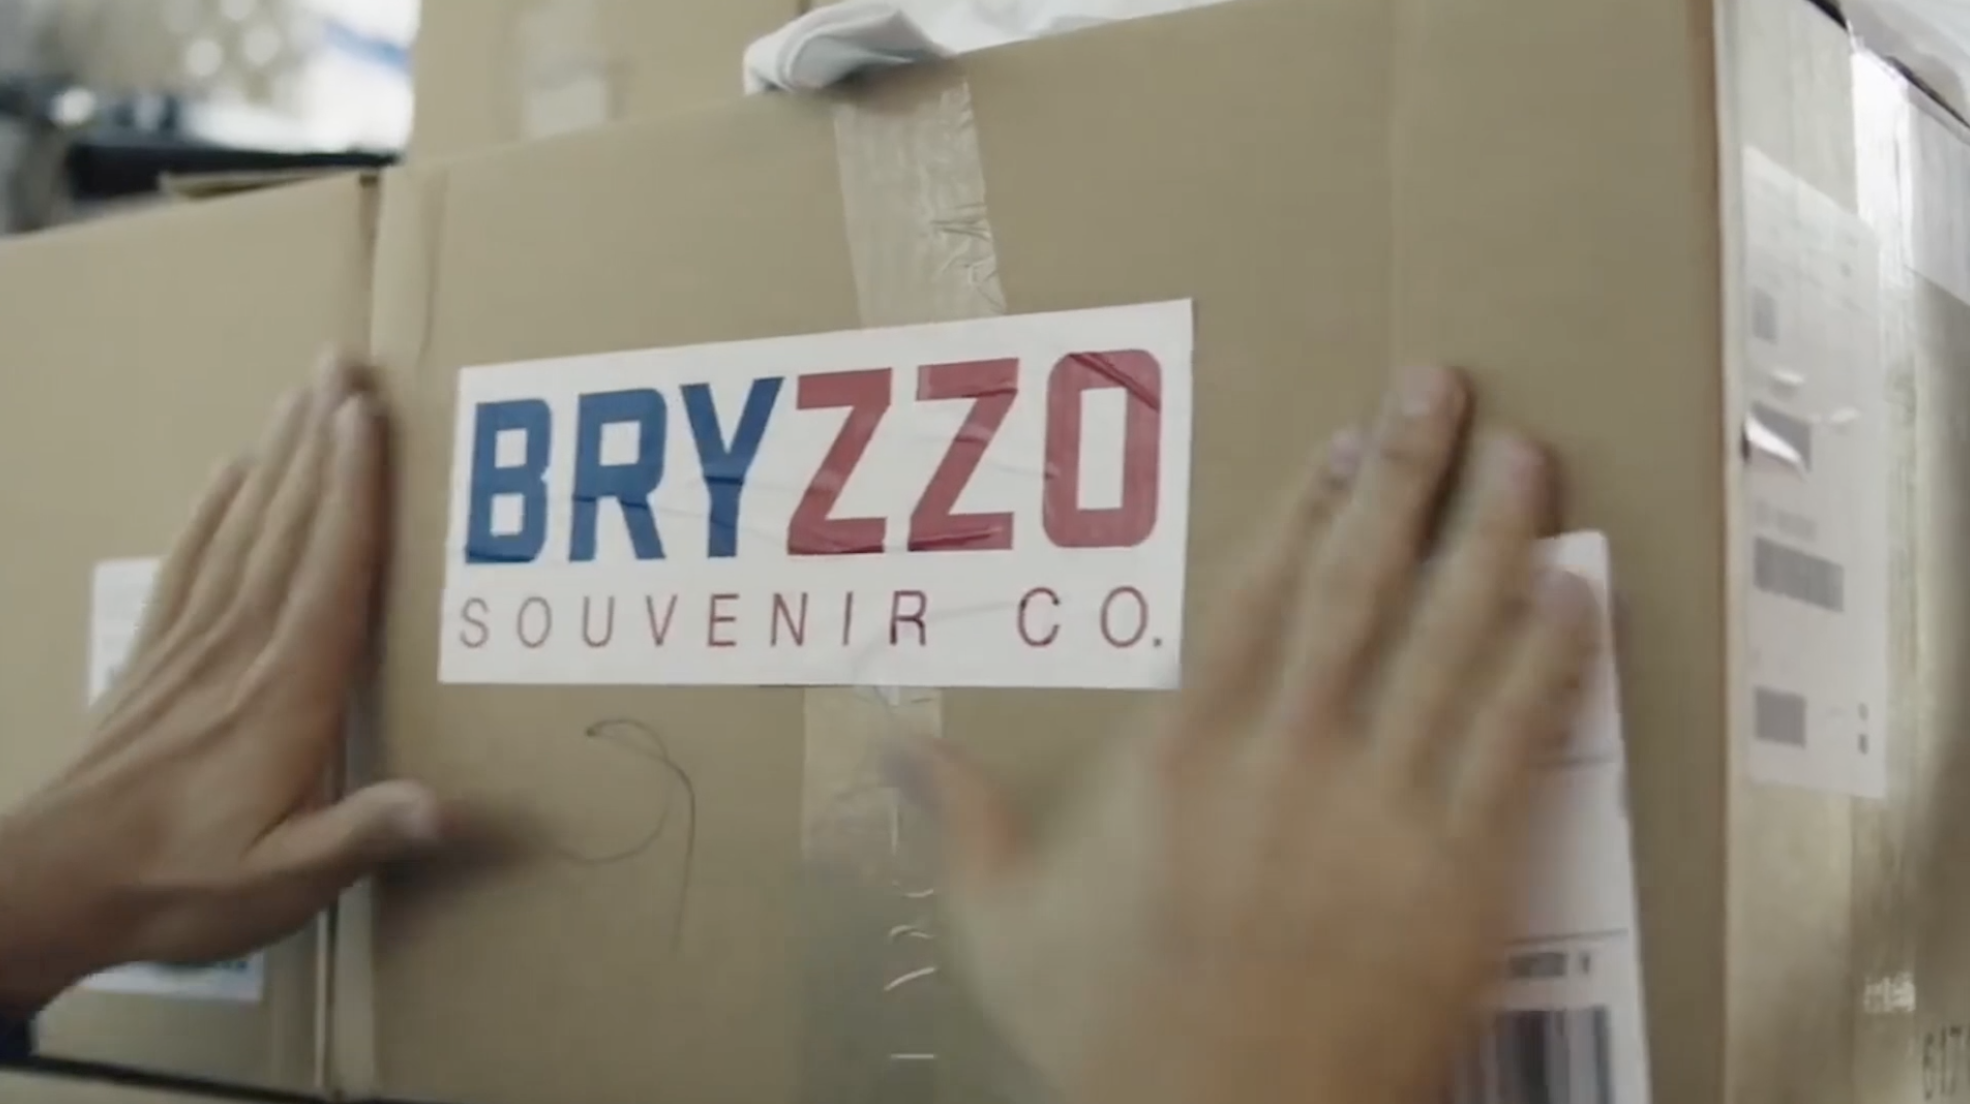 Thumbnail for Bryzzo Souvenir Co.